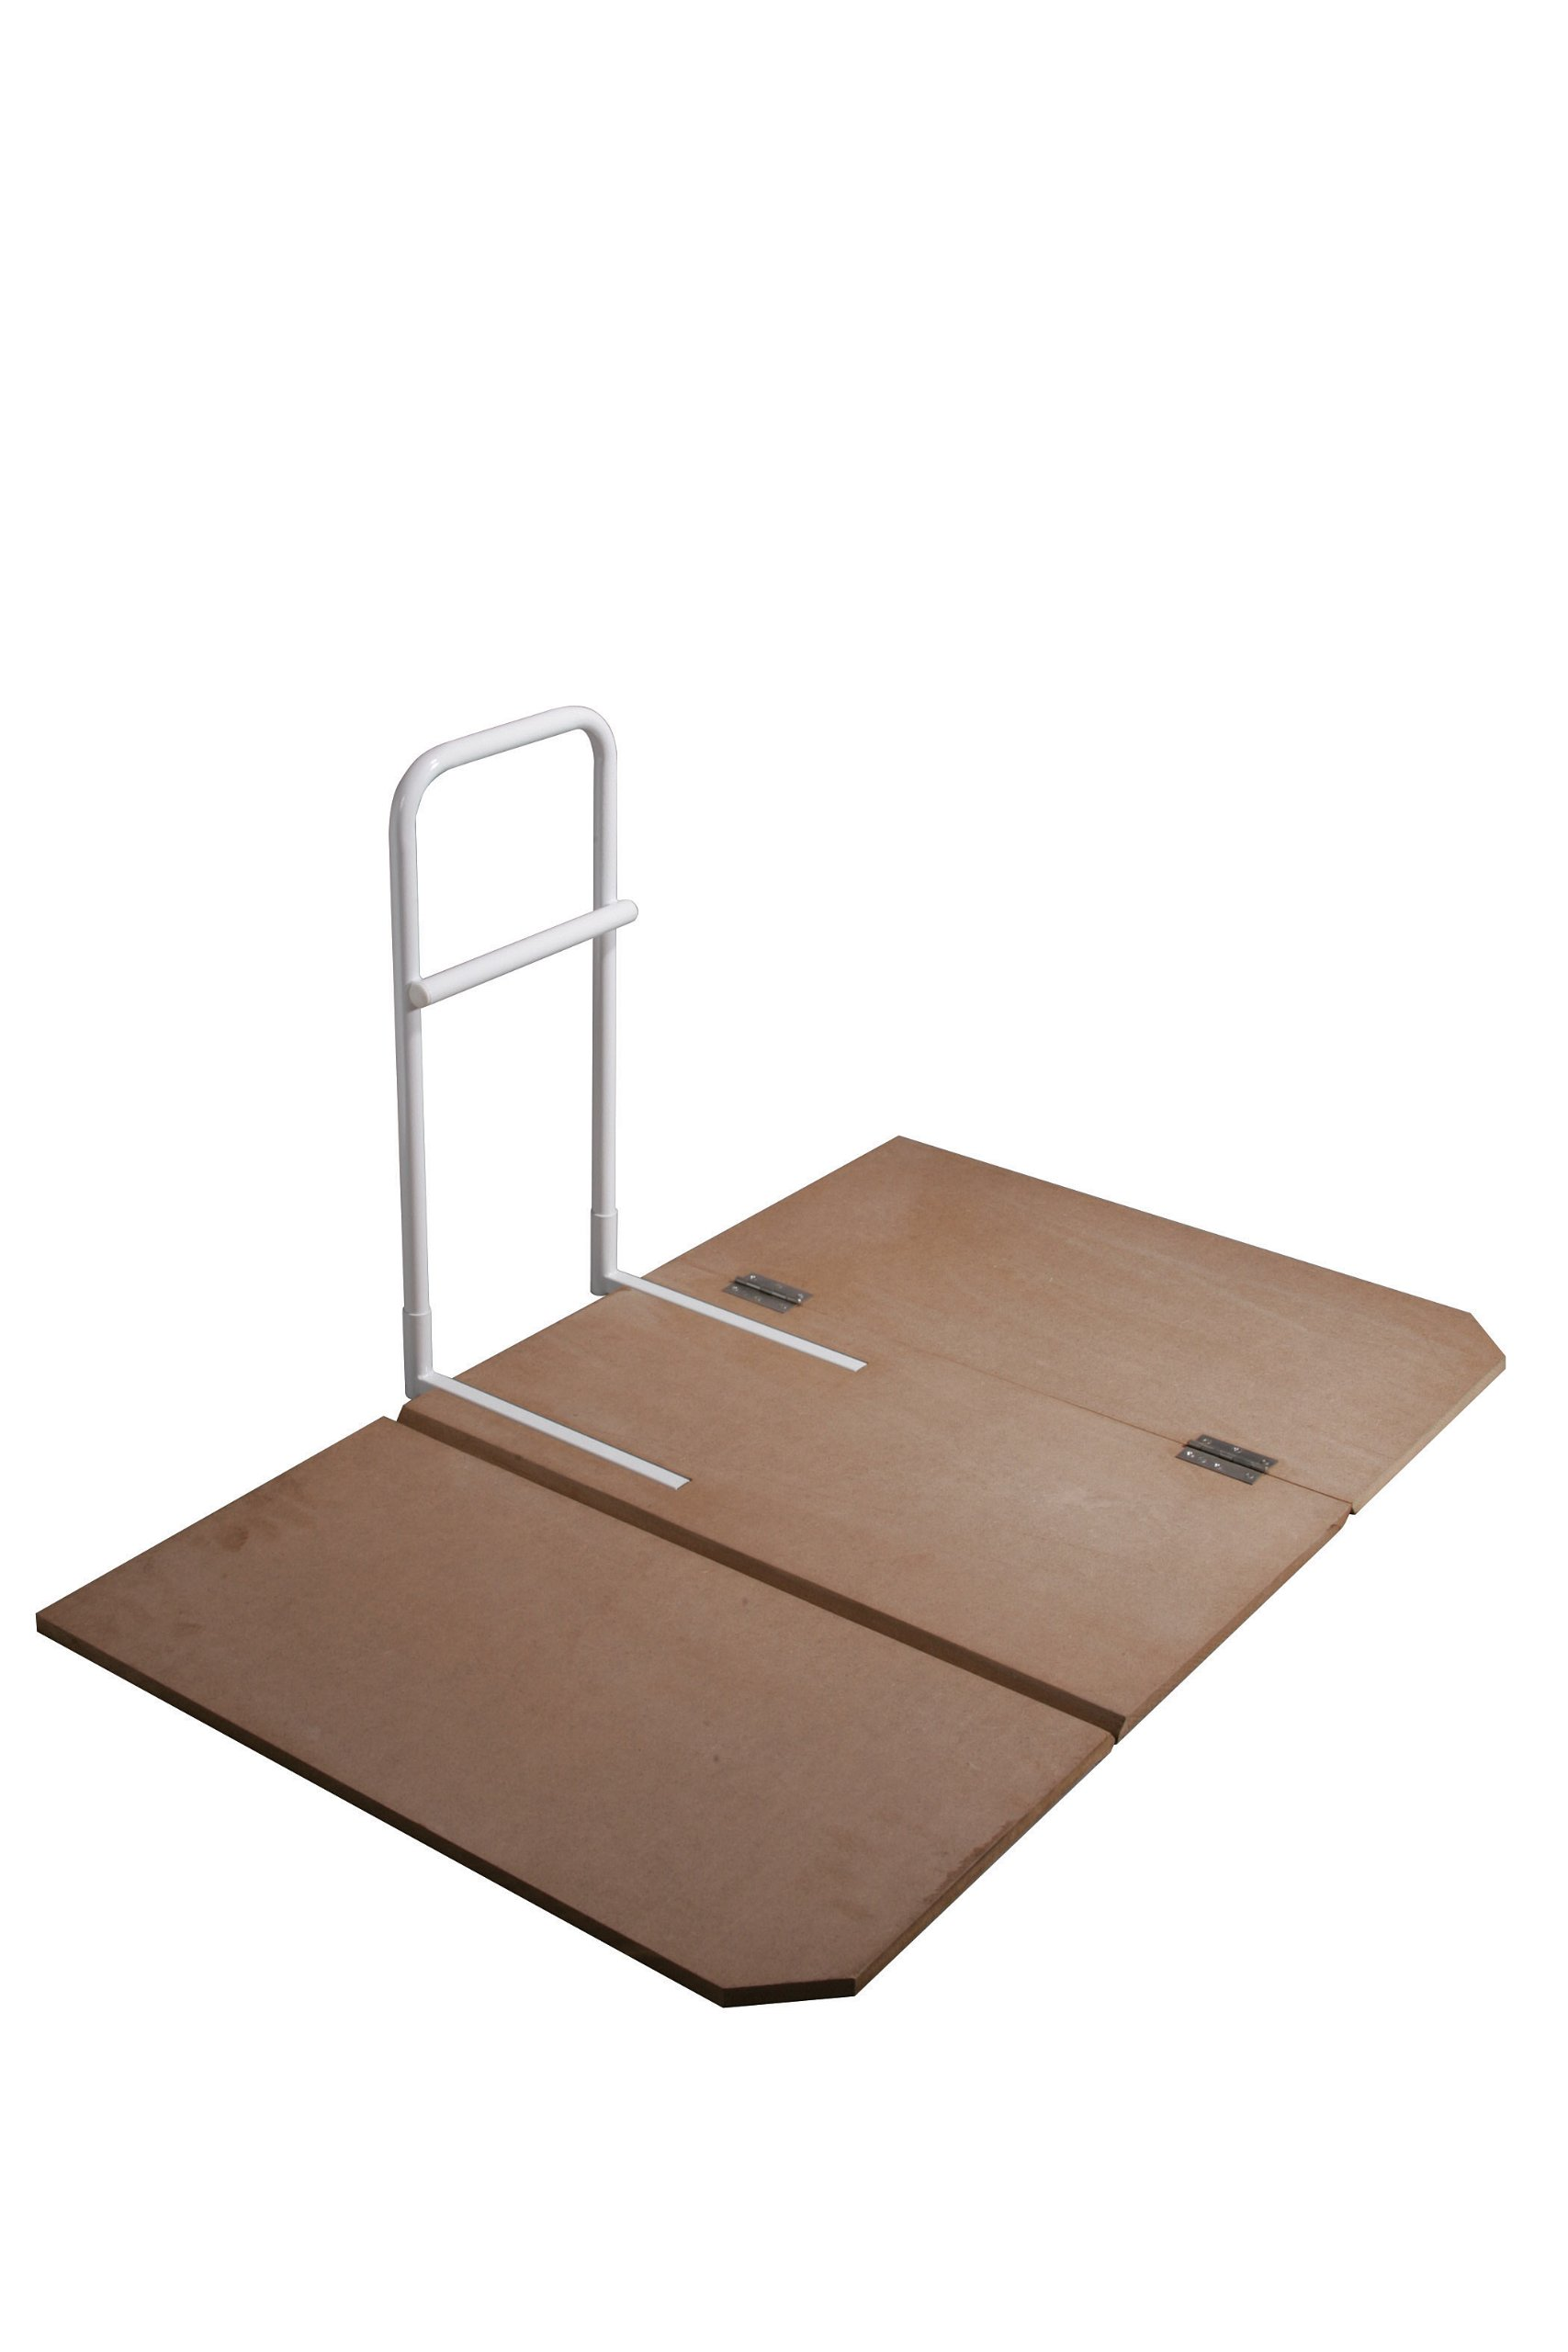 Drive Medical Home Bed Assist Grab Rail with Bed Board by Drive Medical